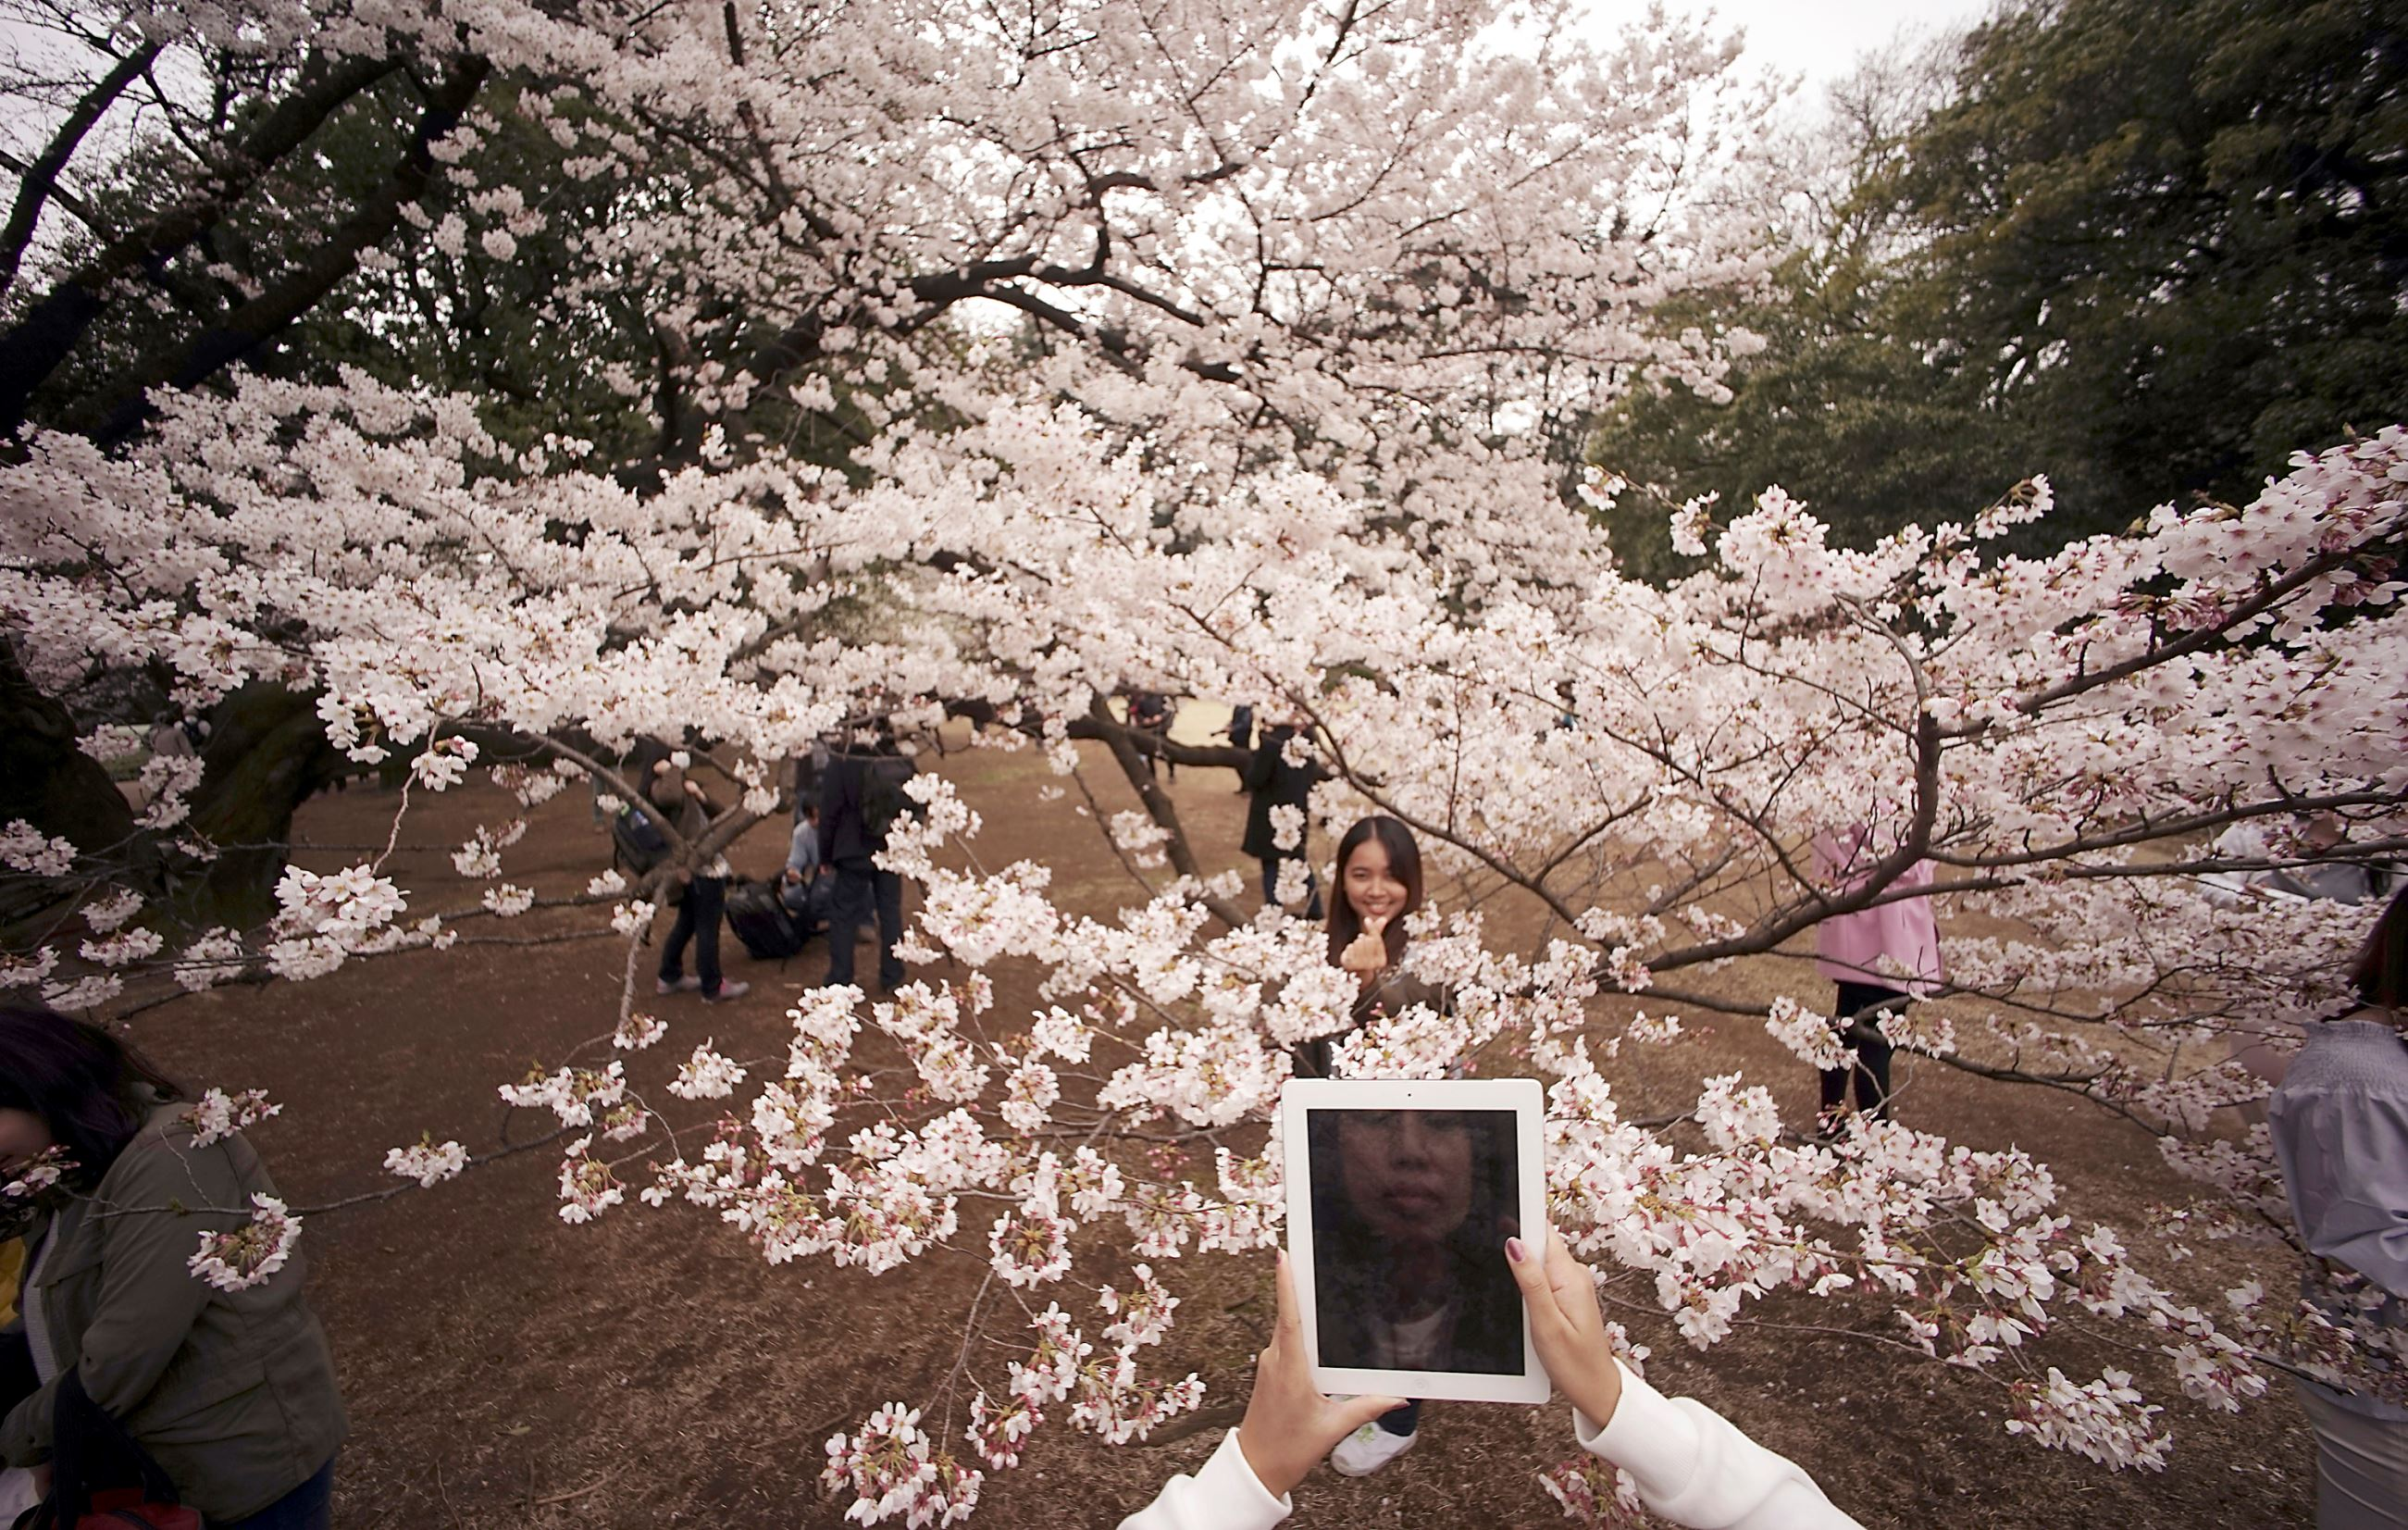 Слайд 32 из 86: A visitor takes a picture of a woman with blooming cherry blossoms as background at a park in Tokyo, Wednesday, March 30, 2016. Tens of thousands of admirers will be expected to show up at the park to enjoy the white pink blossoms. (AP Photo/Eugene Hoshi